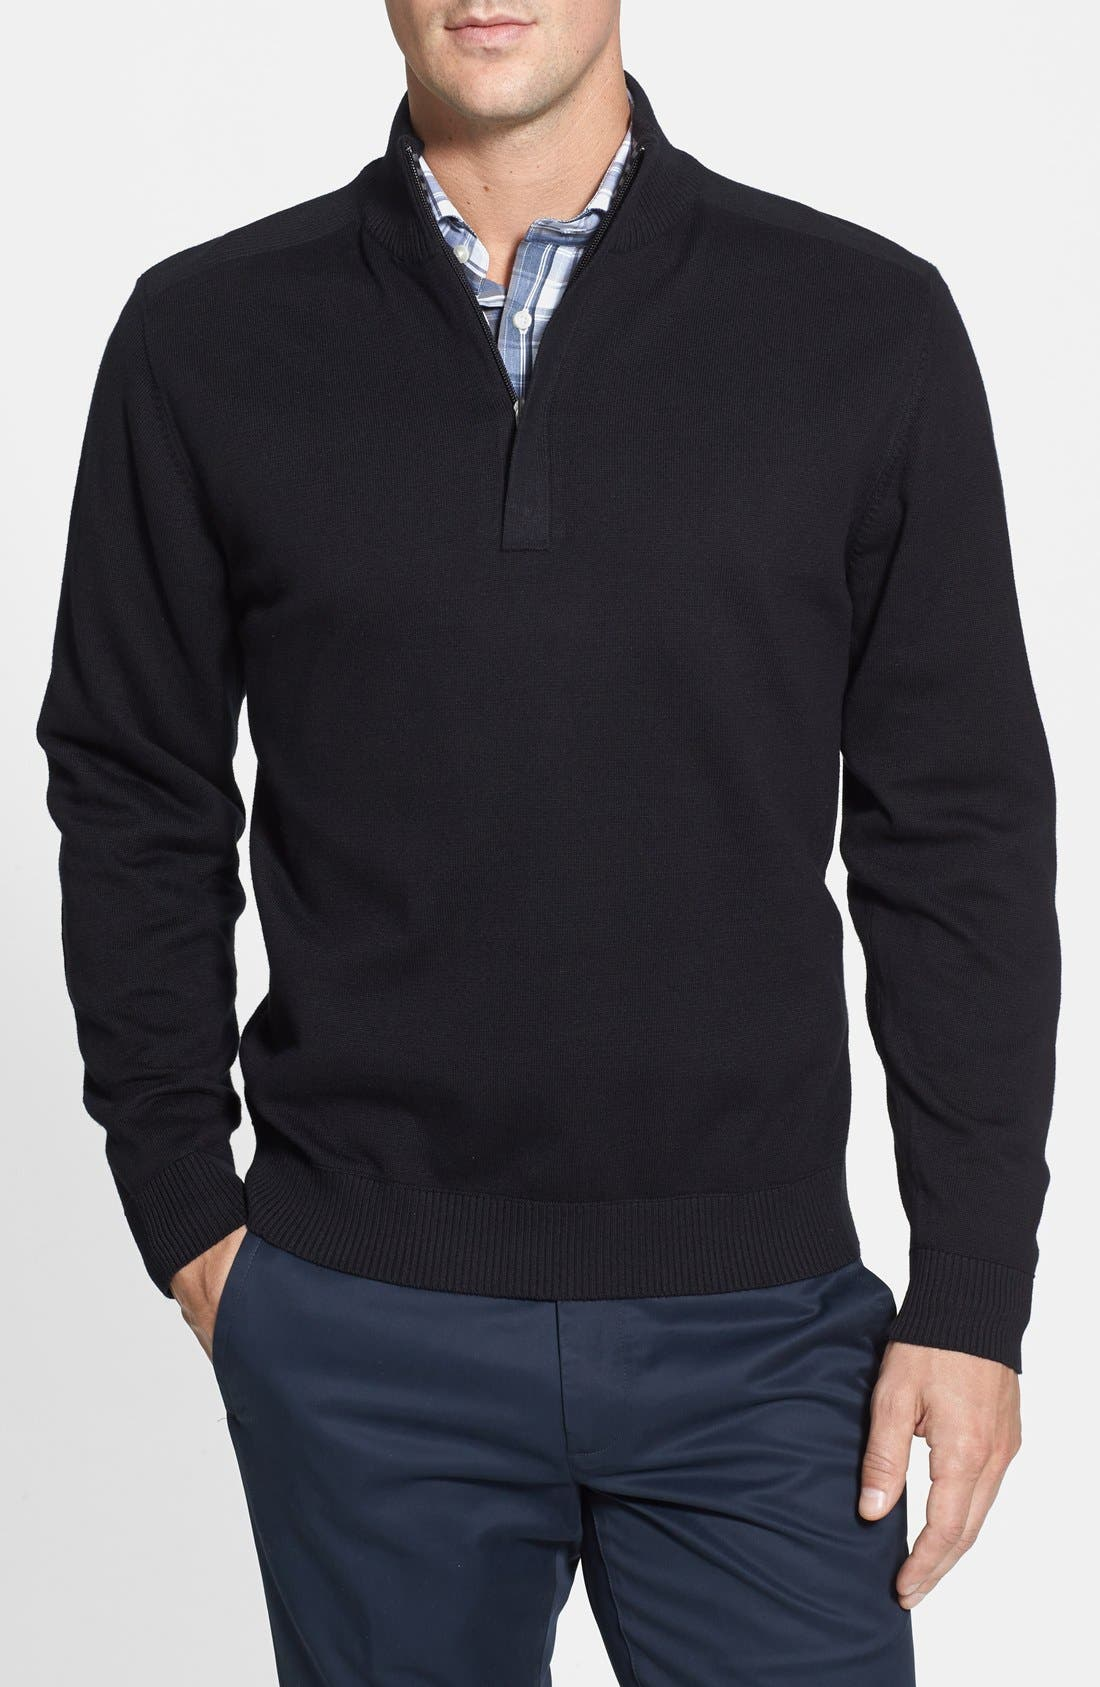 Cutter & Buck 'Broadview' Half Zip Sweater (Big & Tall)